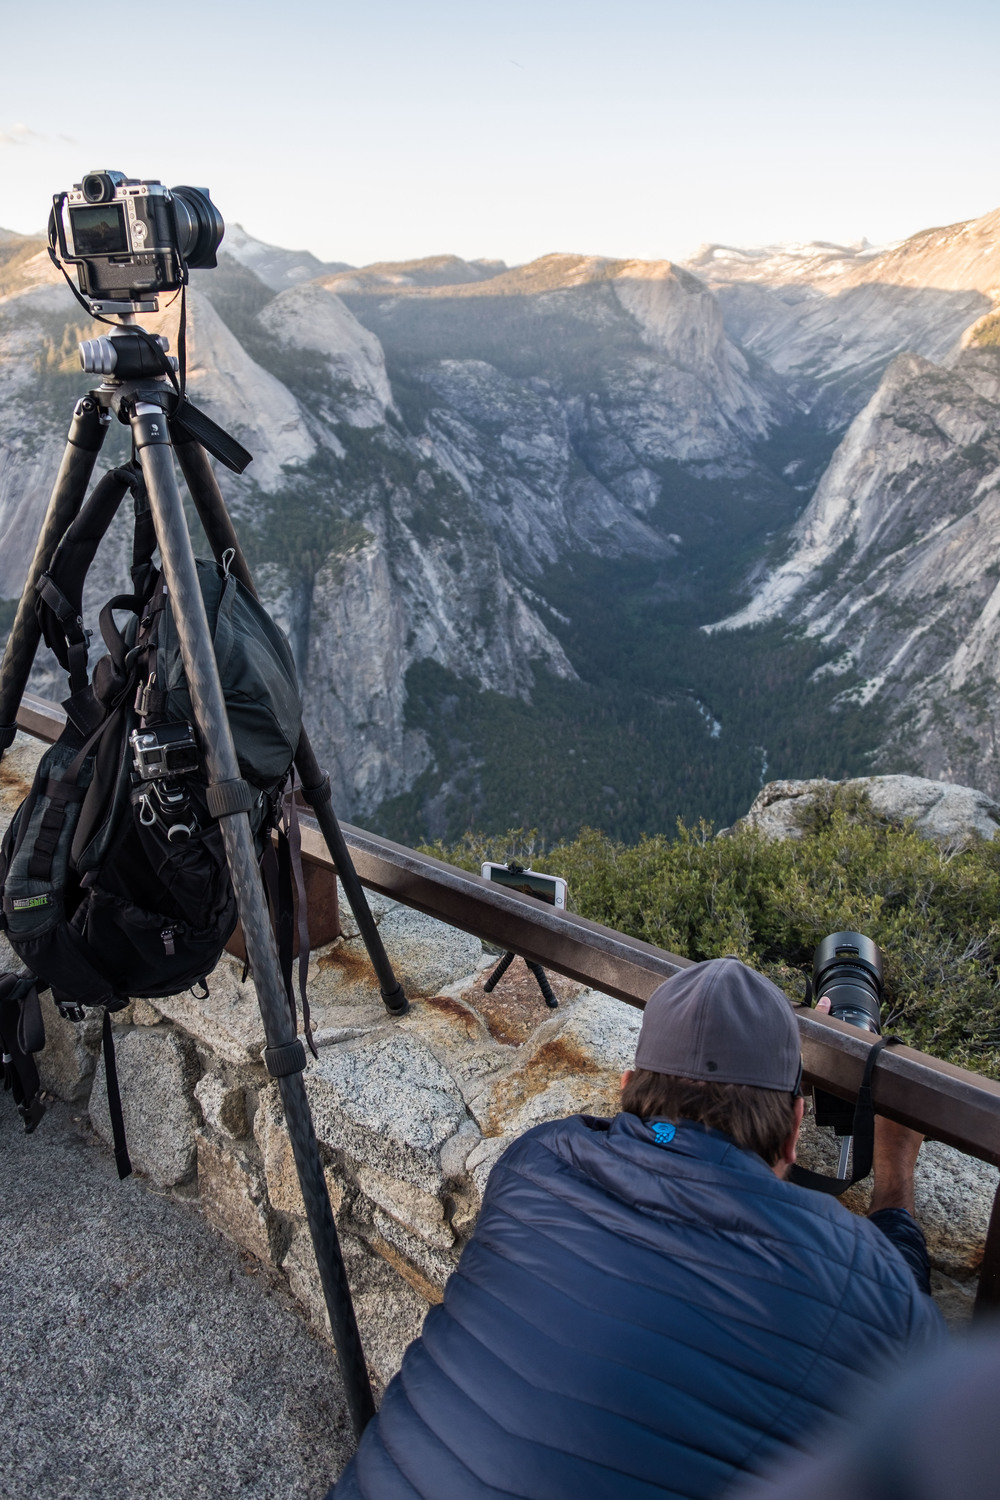 Jonathan Irish capturing the iconic Tunnel View at Yosemite.